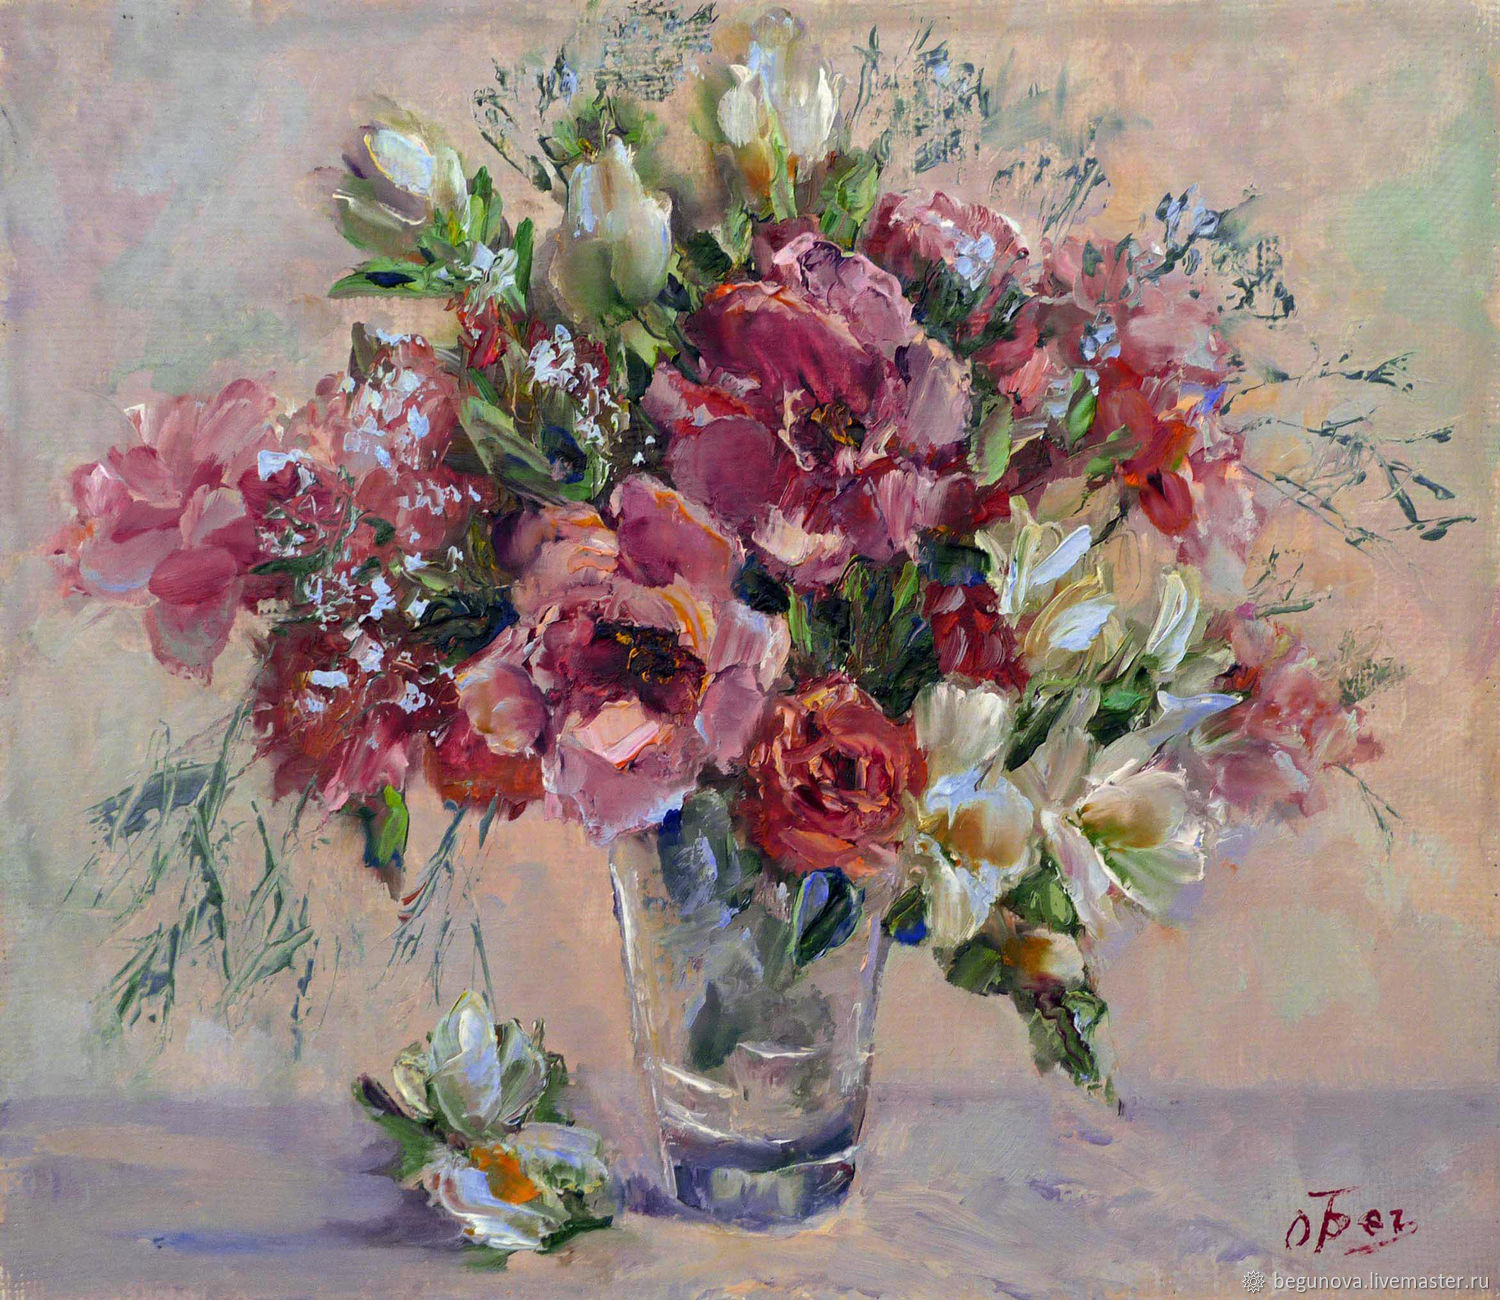 Oil painting wild flowers bouquet of flowers in a vase, order a picture, Pictures, Krasnodar,  Фото №1